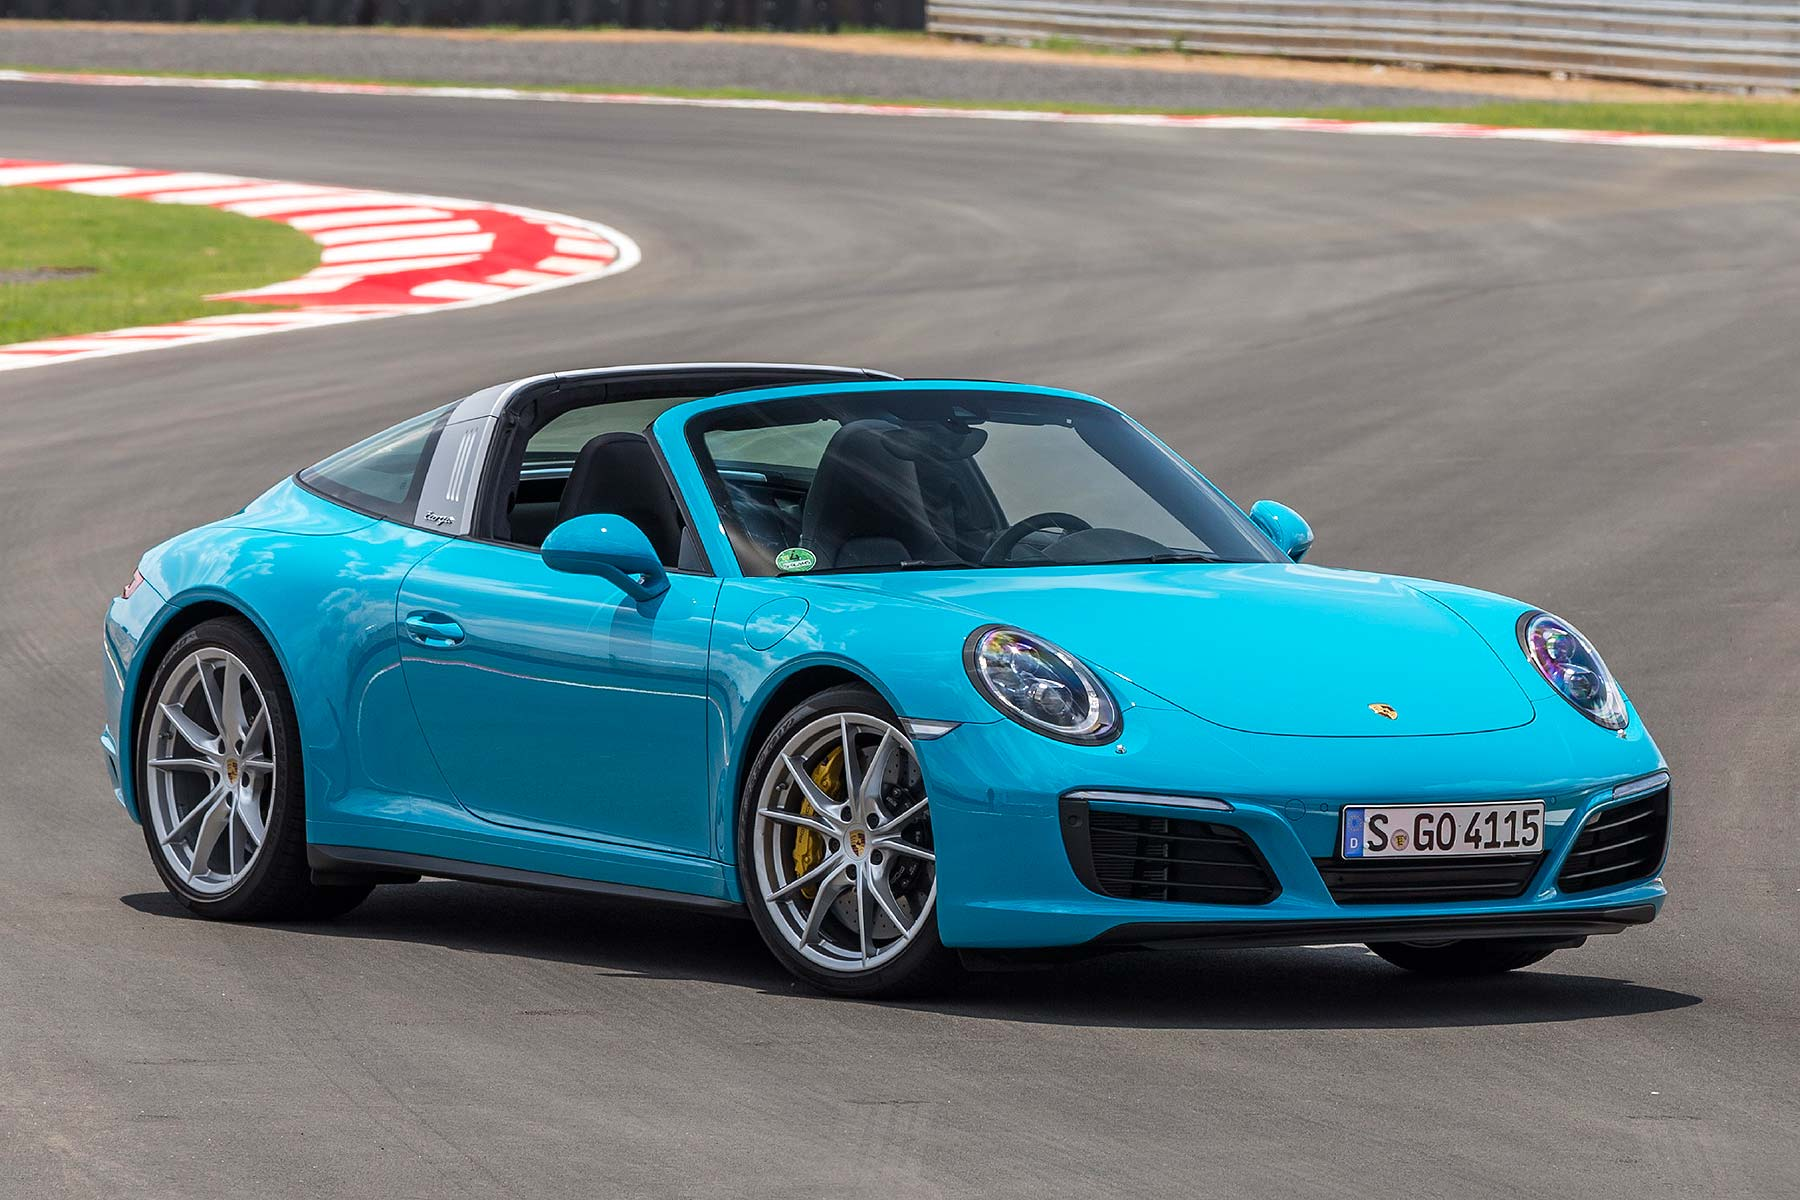 2016 porsche 911 targa 4s review first drive motoring research. Black Bedroom Furniture Sets. Home Design Ideas